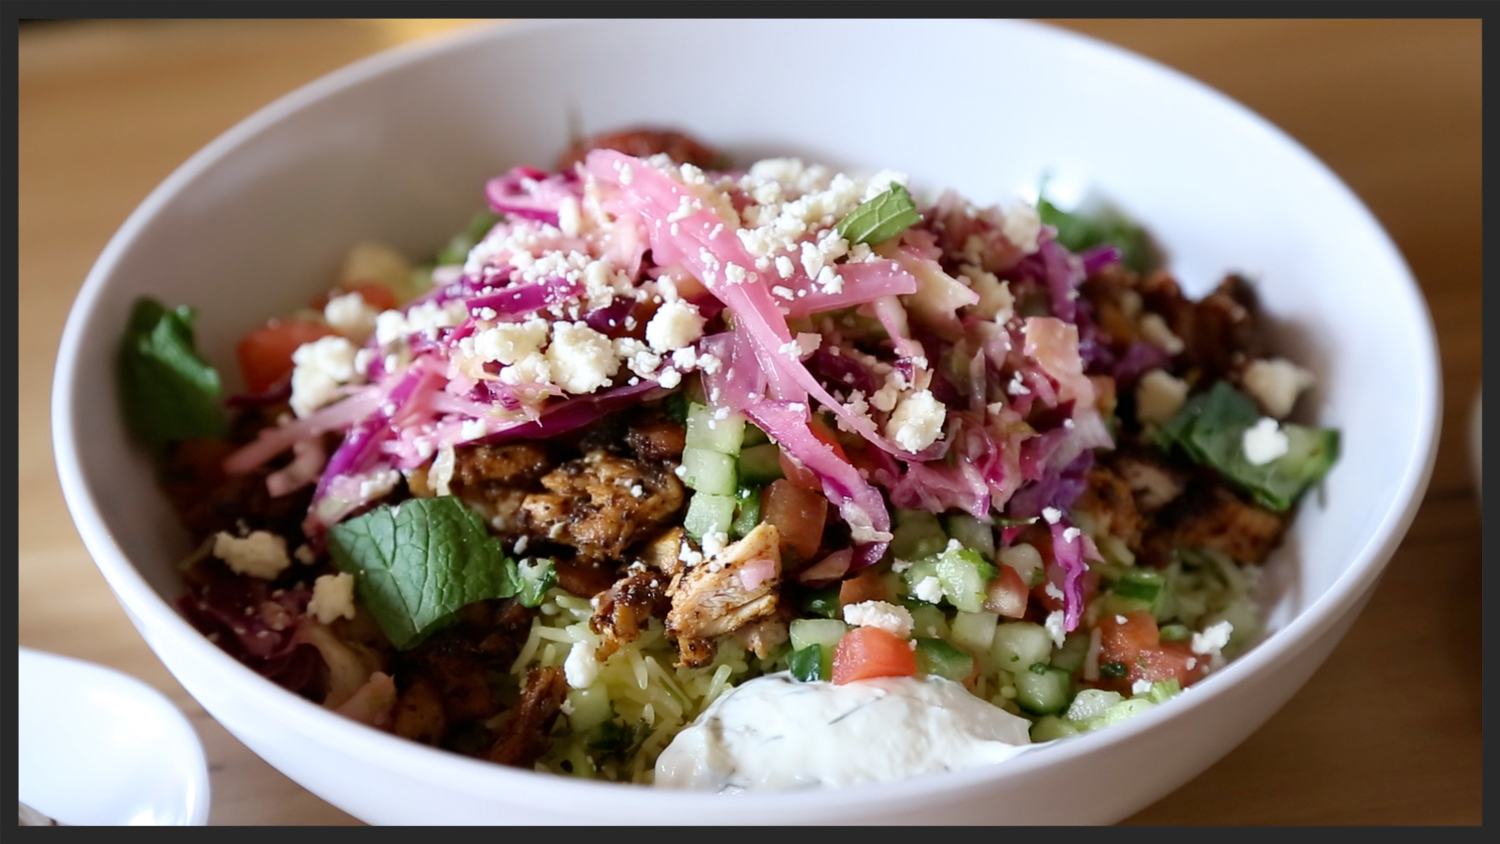 Pictured:  Rice bowl with Chicken, Cucumber, Cabbage Slaw, and Feta from  Cava Mezze Grill  |  Foodable WebTV Network